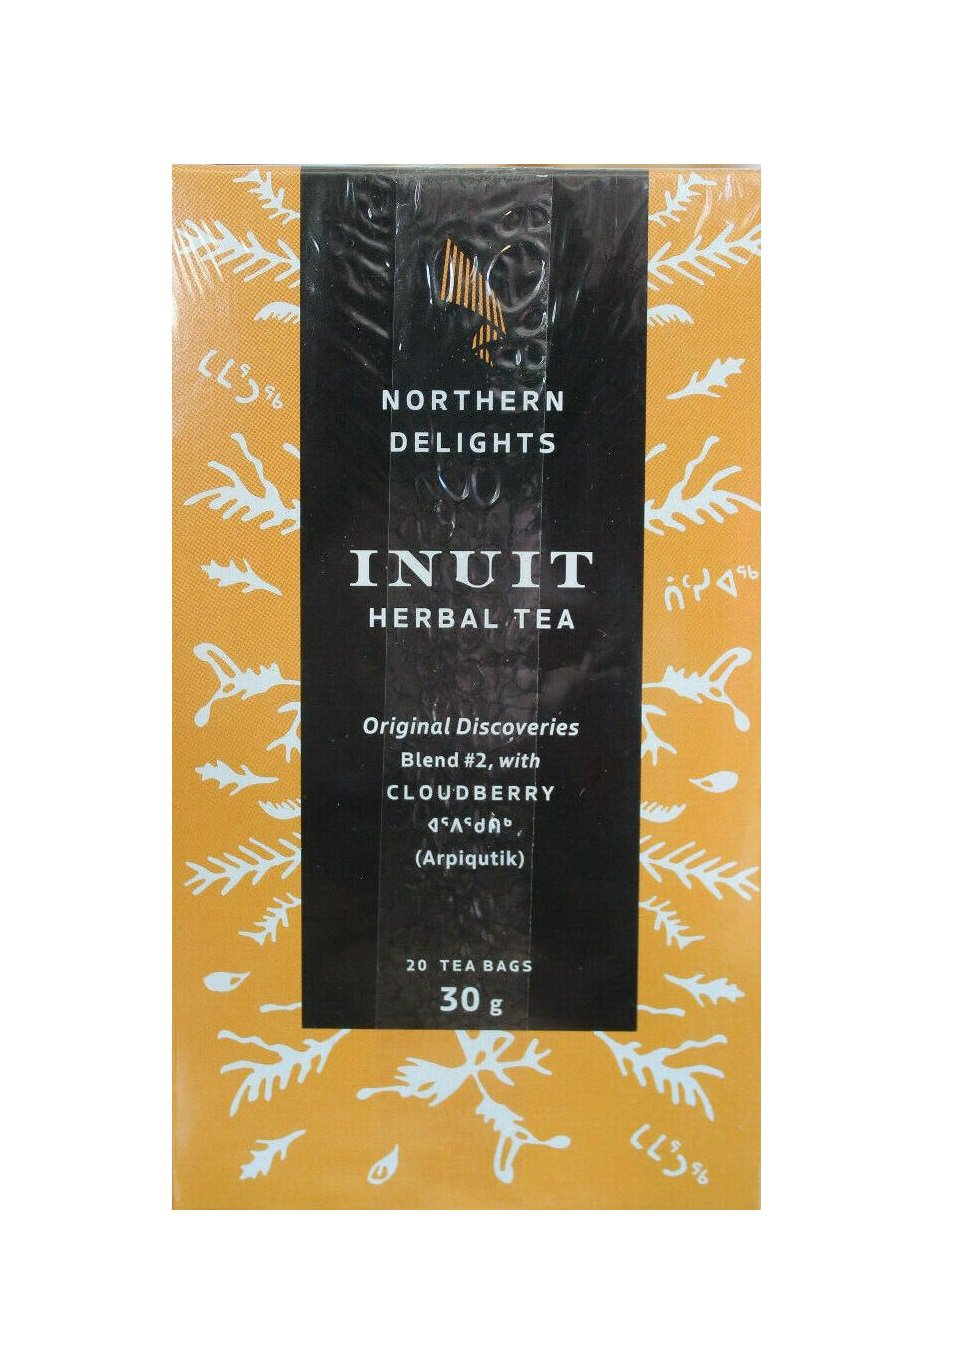 Cloudberry Inuit Herbal Tea 20 bags Gift Idea from Canada Native People